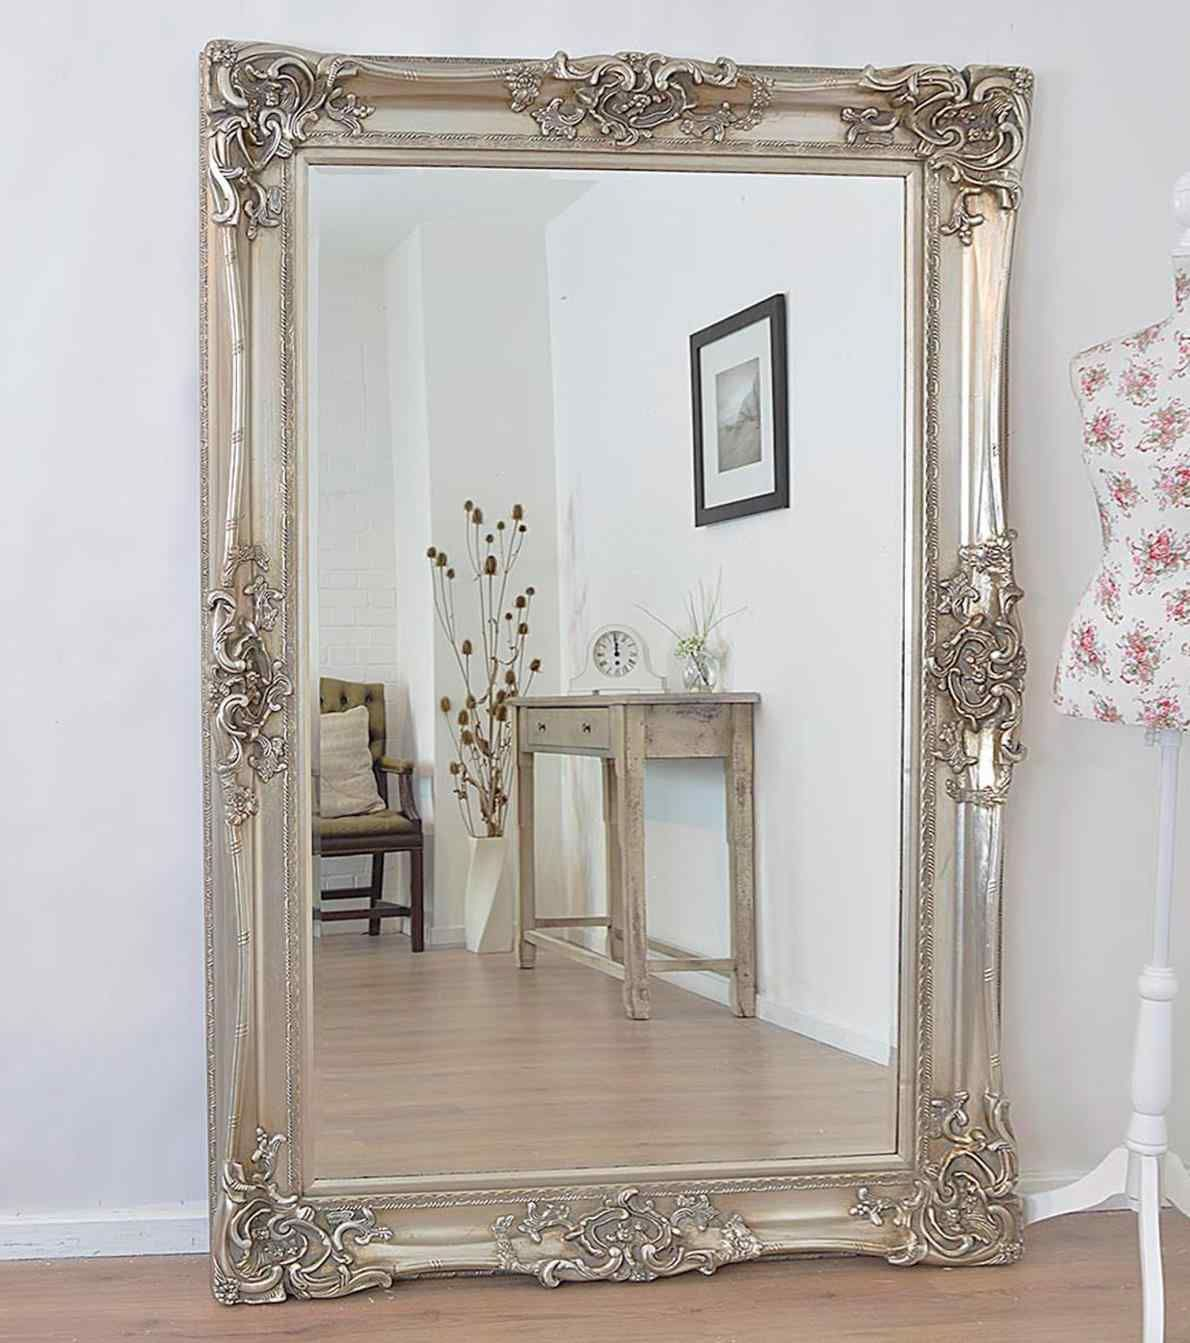 Incredible 14 Amazing Big Fancy Mirrors Design For Your Home Breakpr Mirror Wall Bedroom Fancy Mirrors Modern Mirror Wall